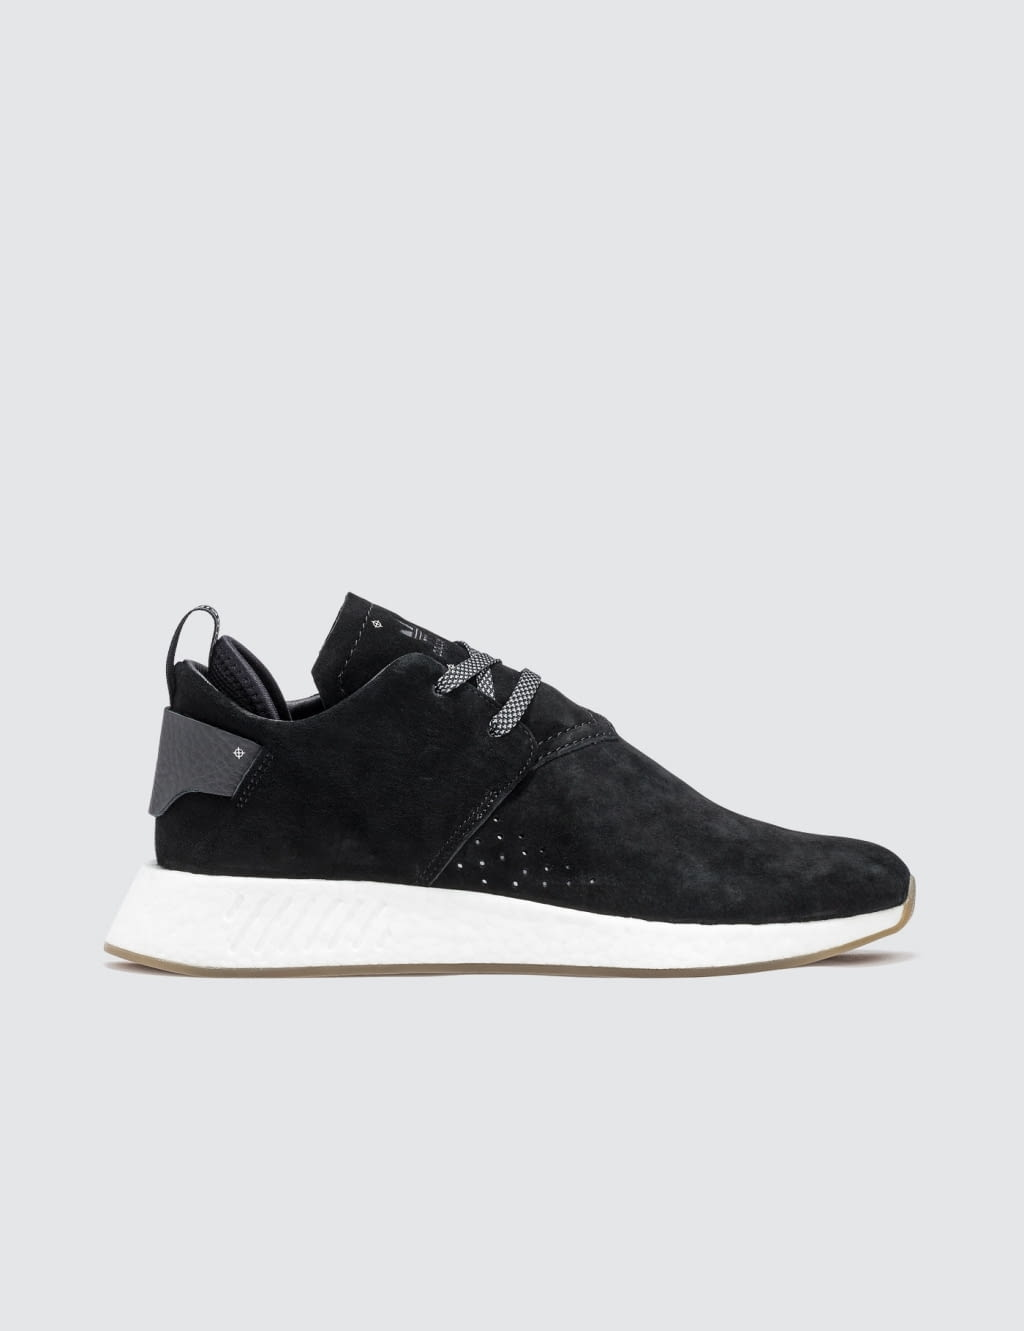 Adidas Originals NMD C2 · Adidas Originals NMD C2 ...